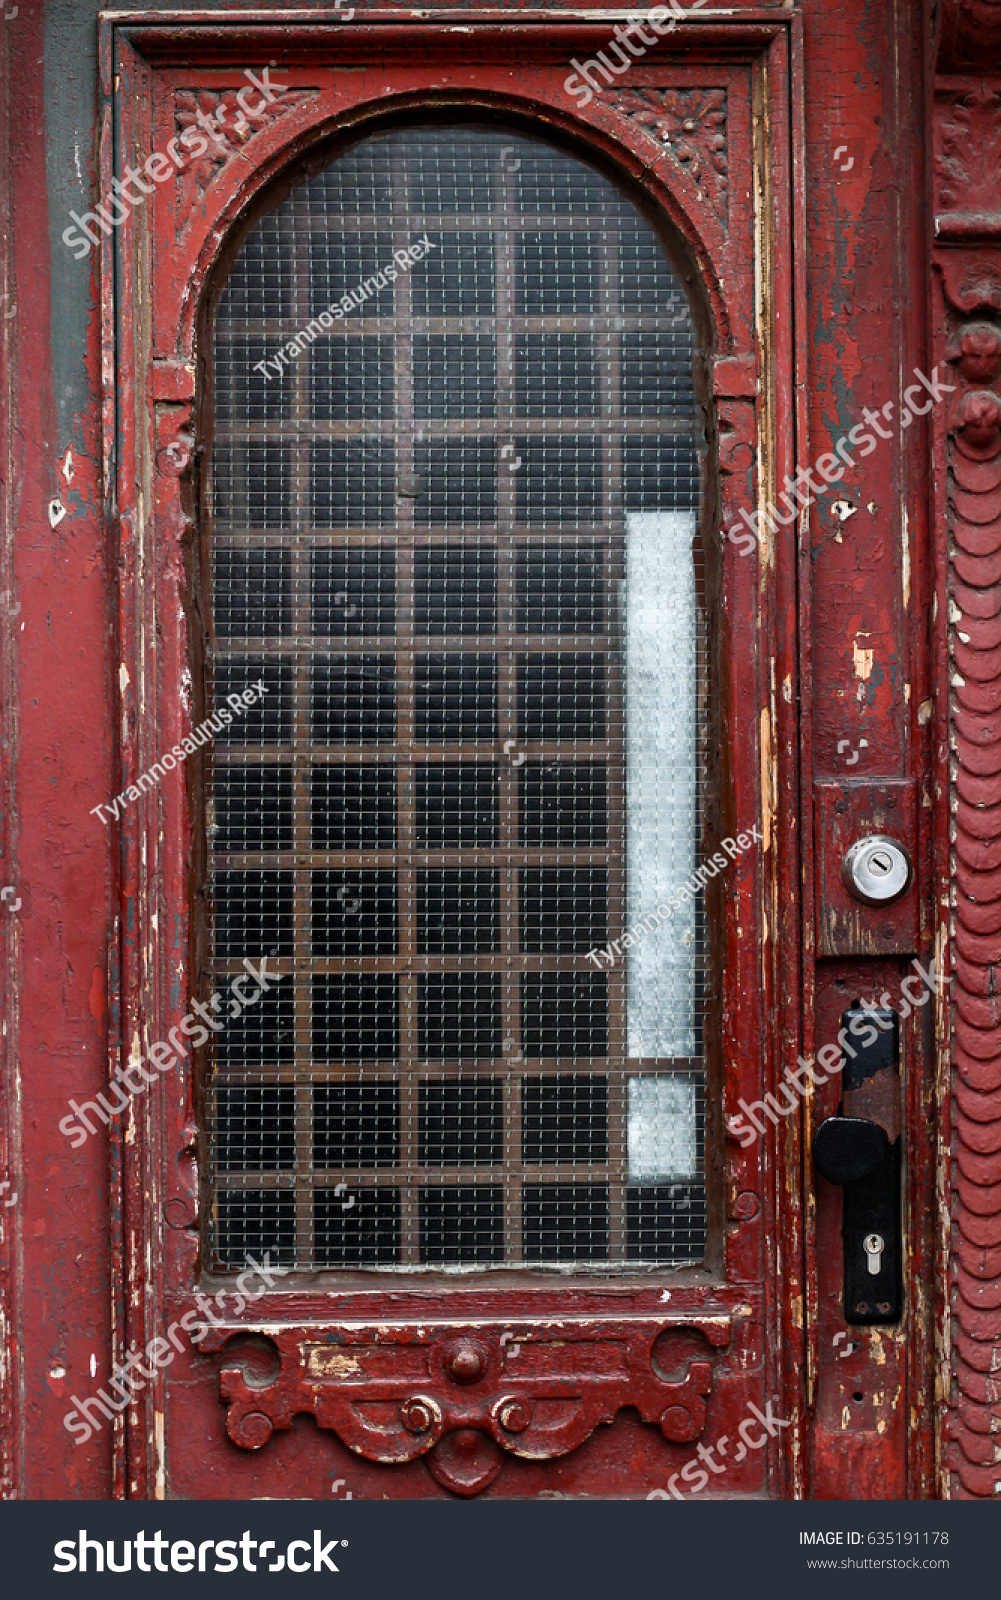 Old Wooden Door Glass Windows Carved Stock Photo 635191178 ...